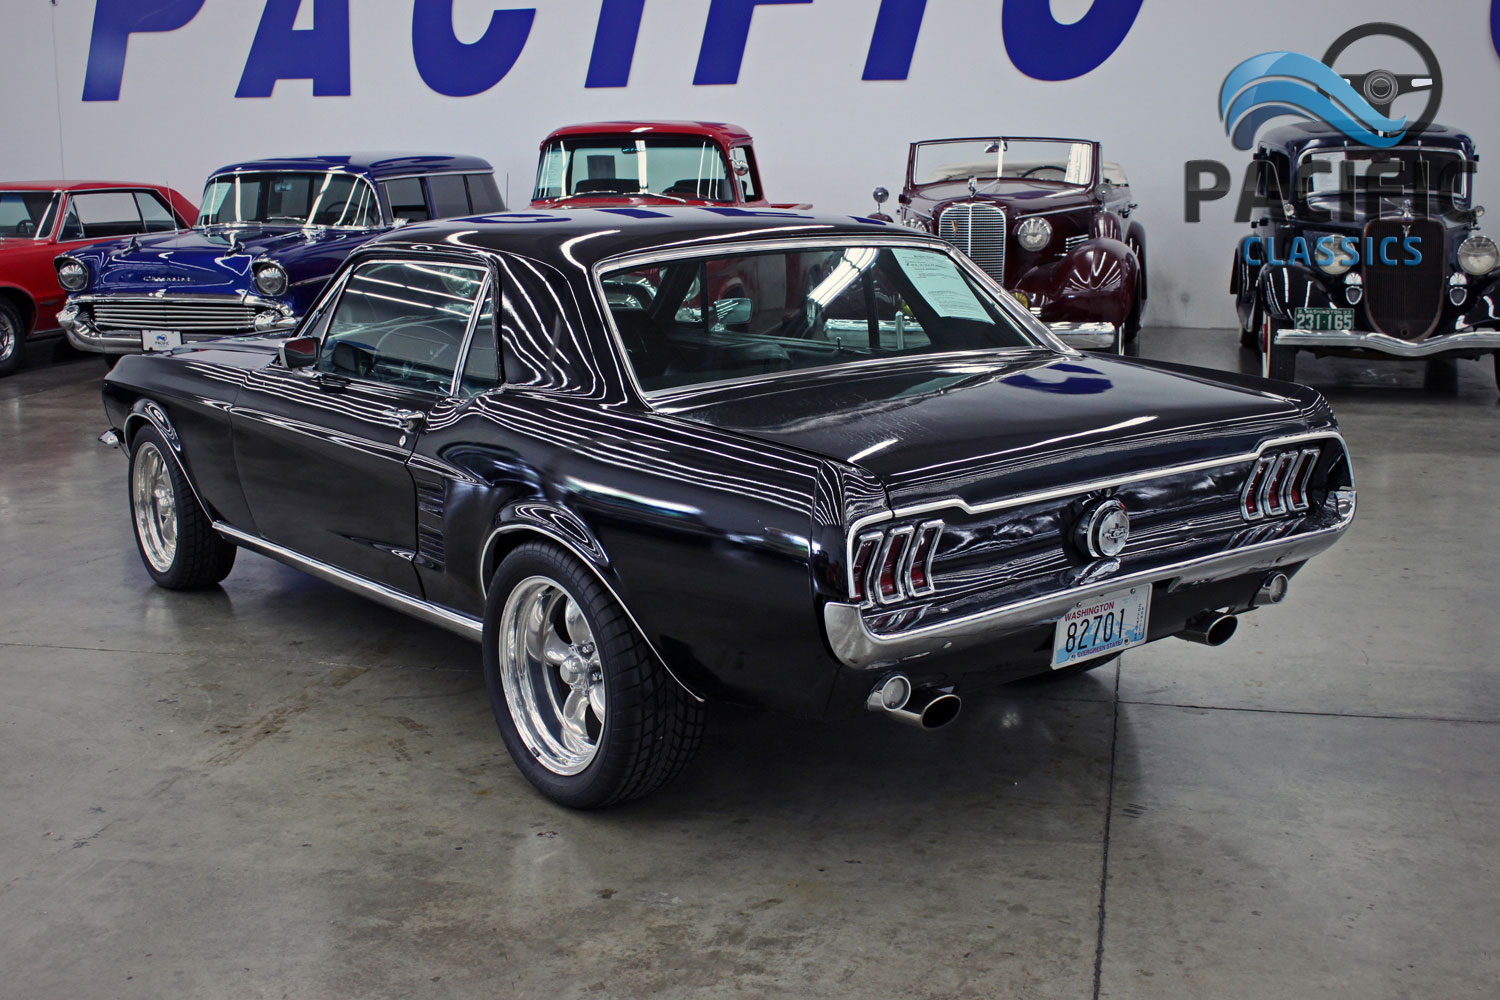 1967 Ford Mustang Coupe Pacific Classics